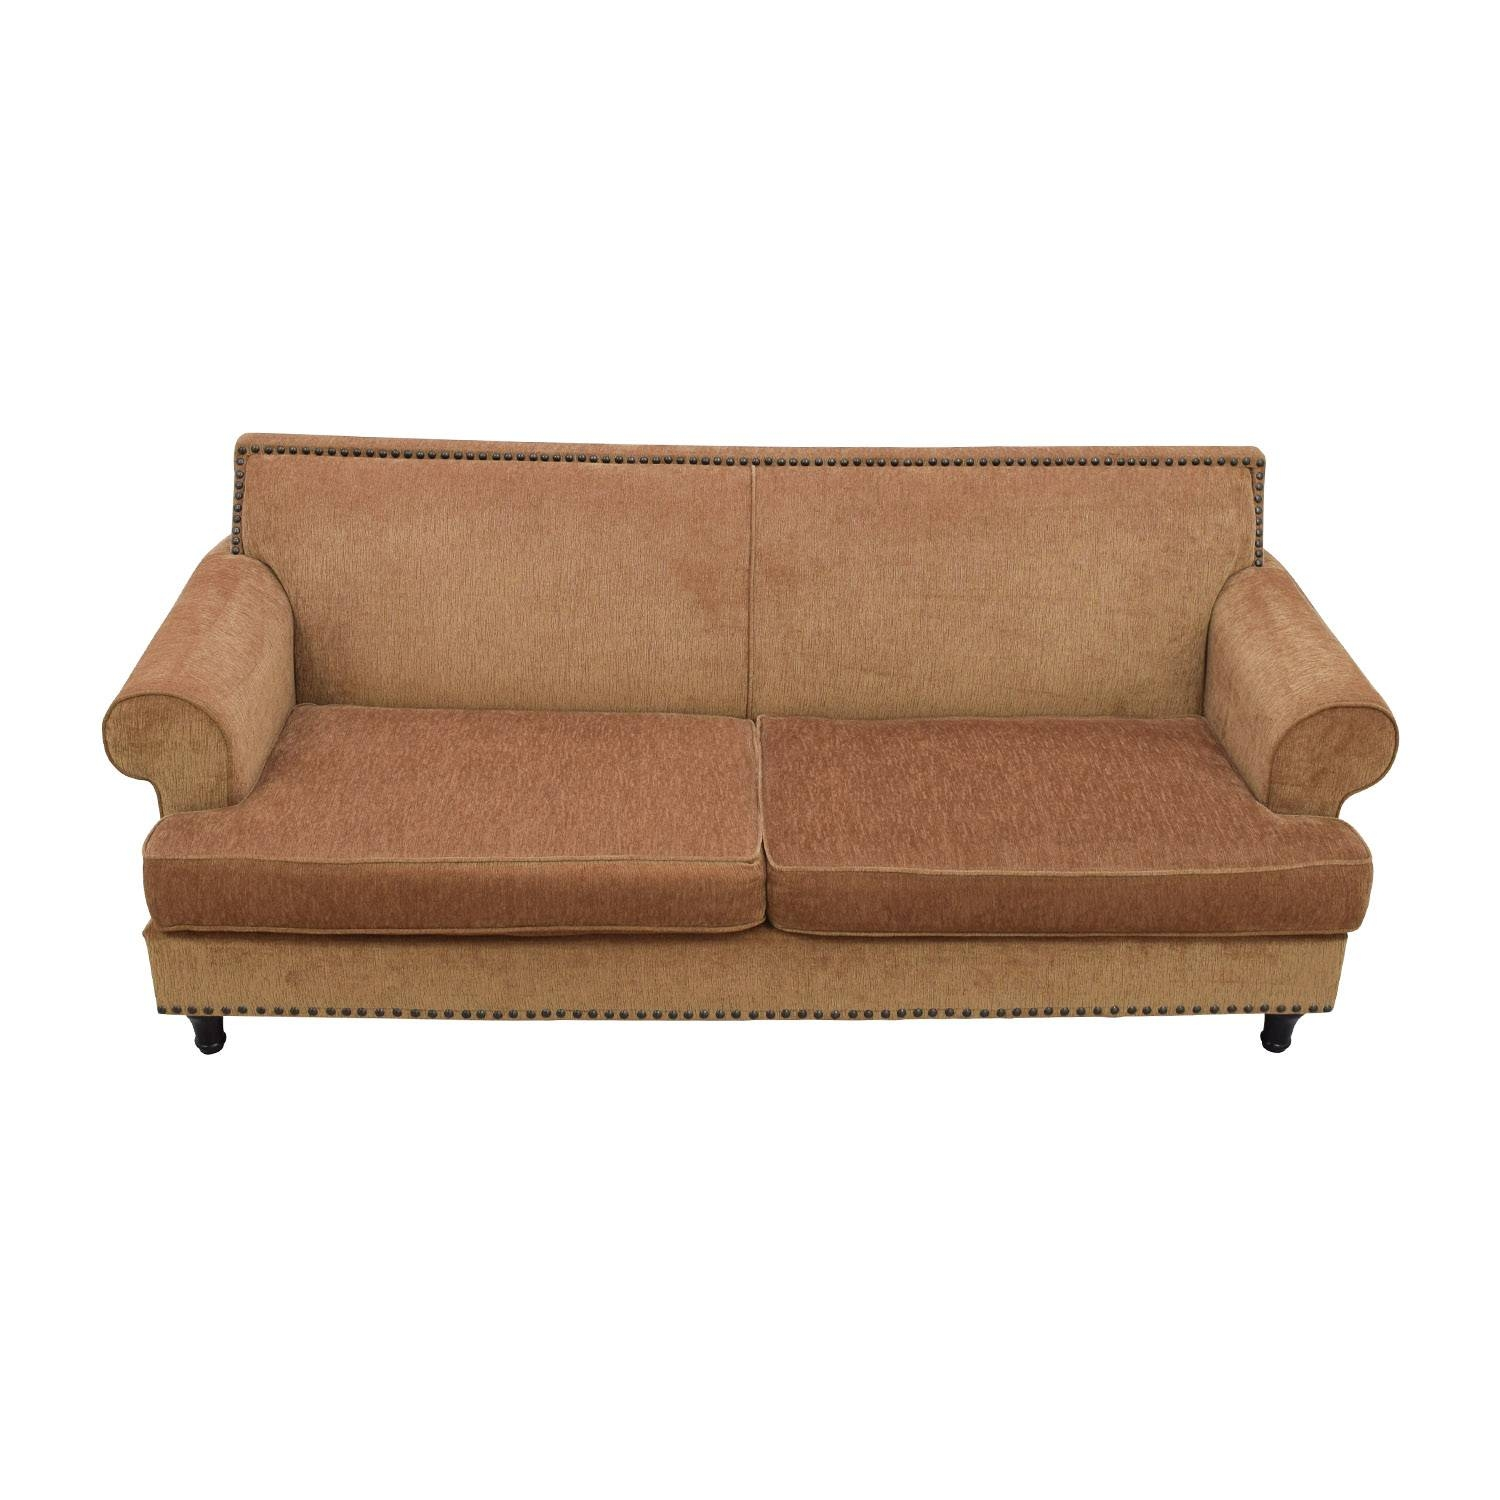 41% Off - Pier 1 Imports Pier 1 Imports Carmen Brown Sofa / Sofas inside Pier One Carmen Sofas (Image 4 of 15)